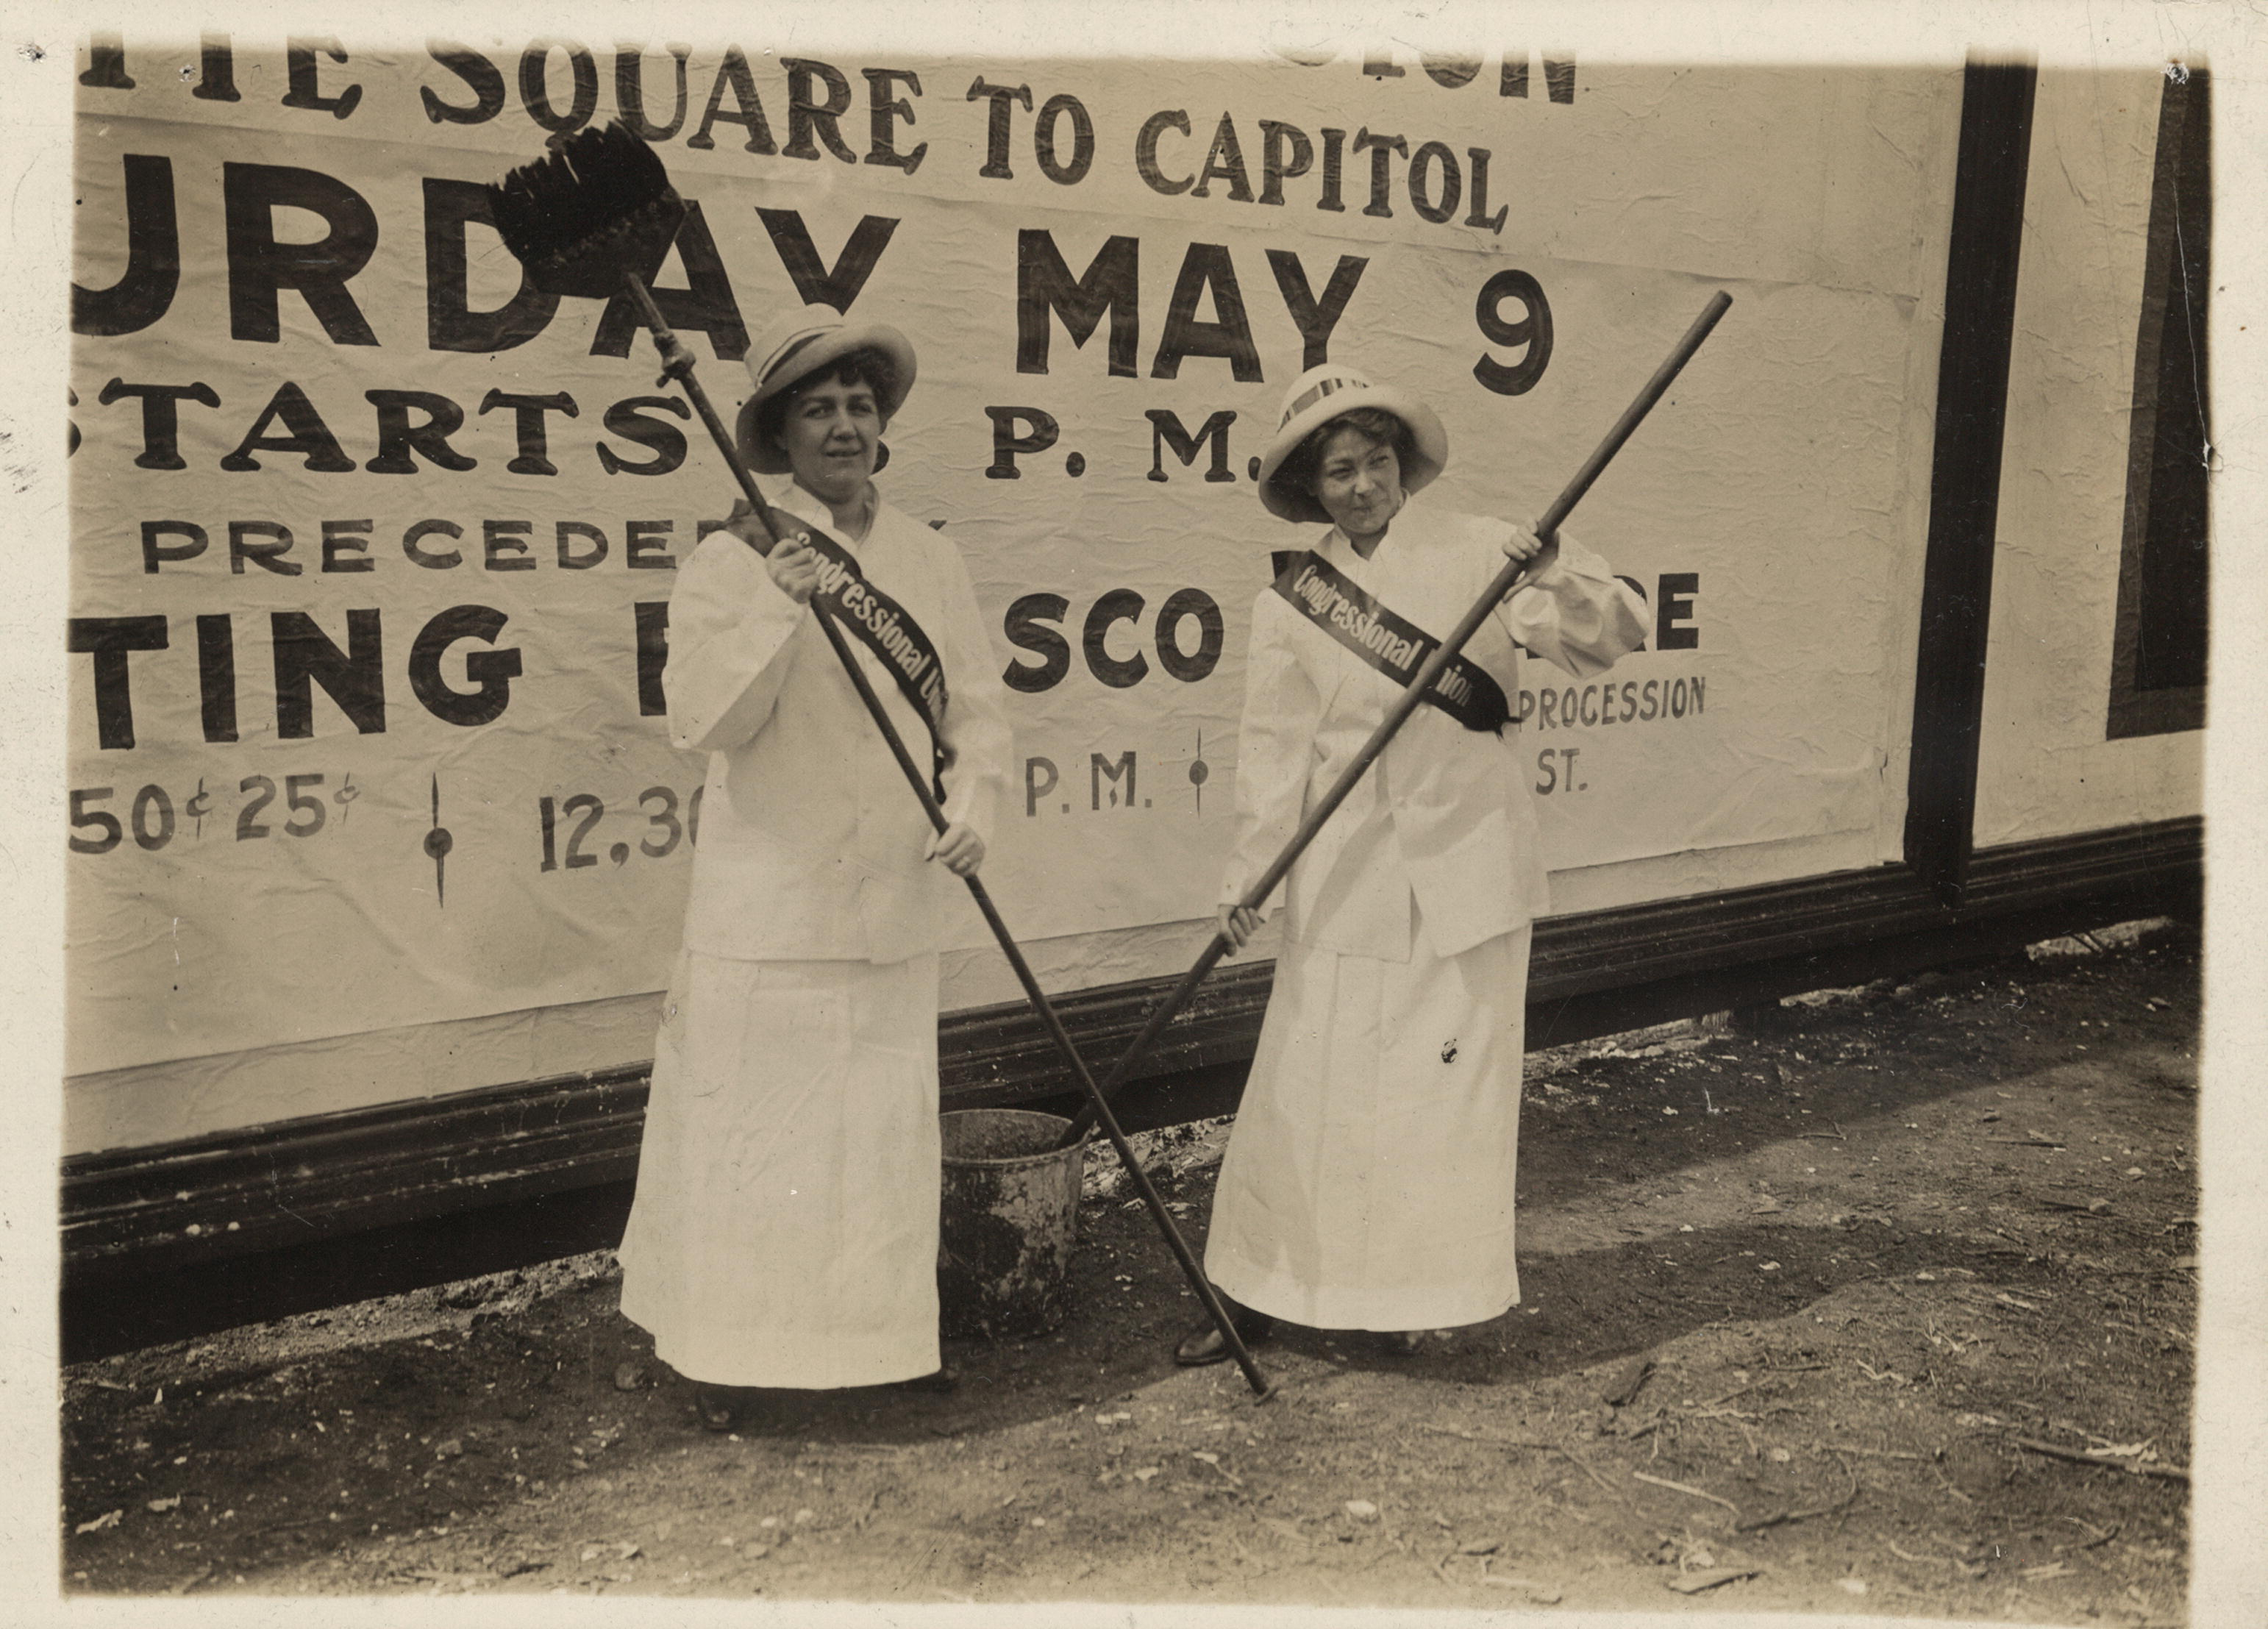 Members of the Congressional Union pasting advertisements